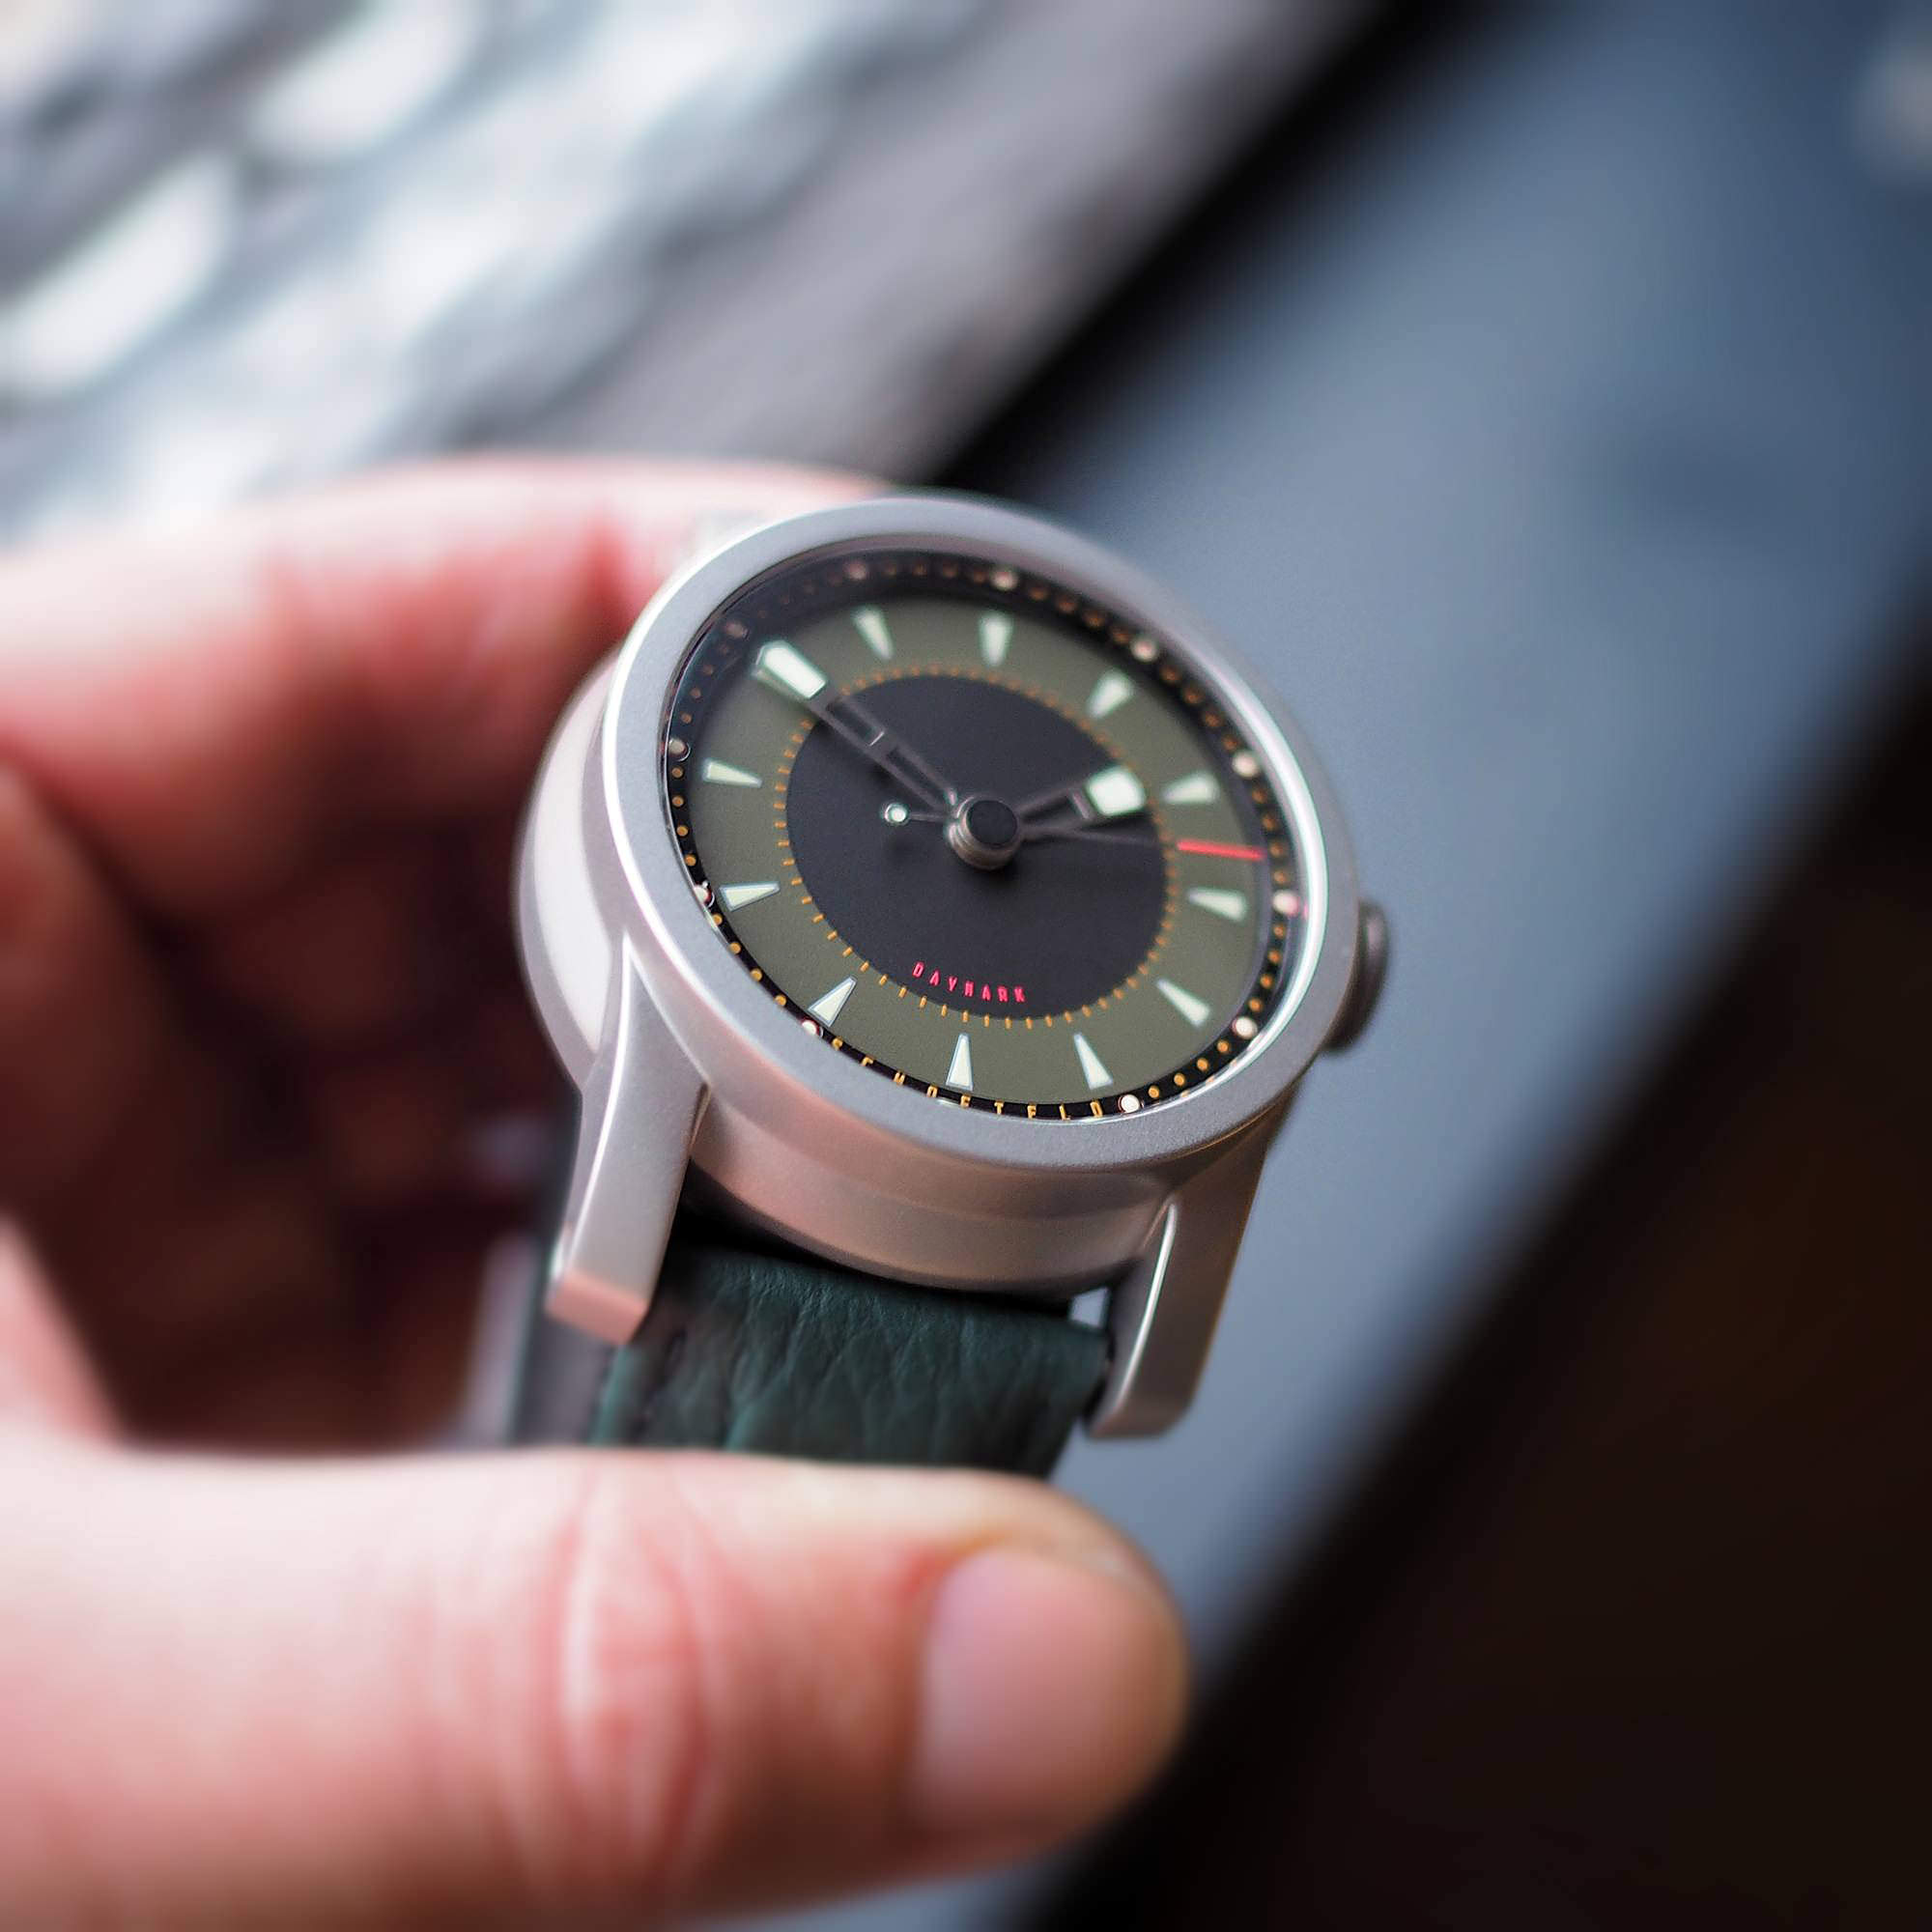 The Daymark watch